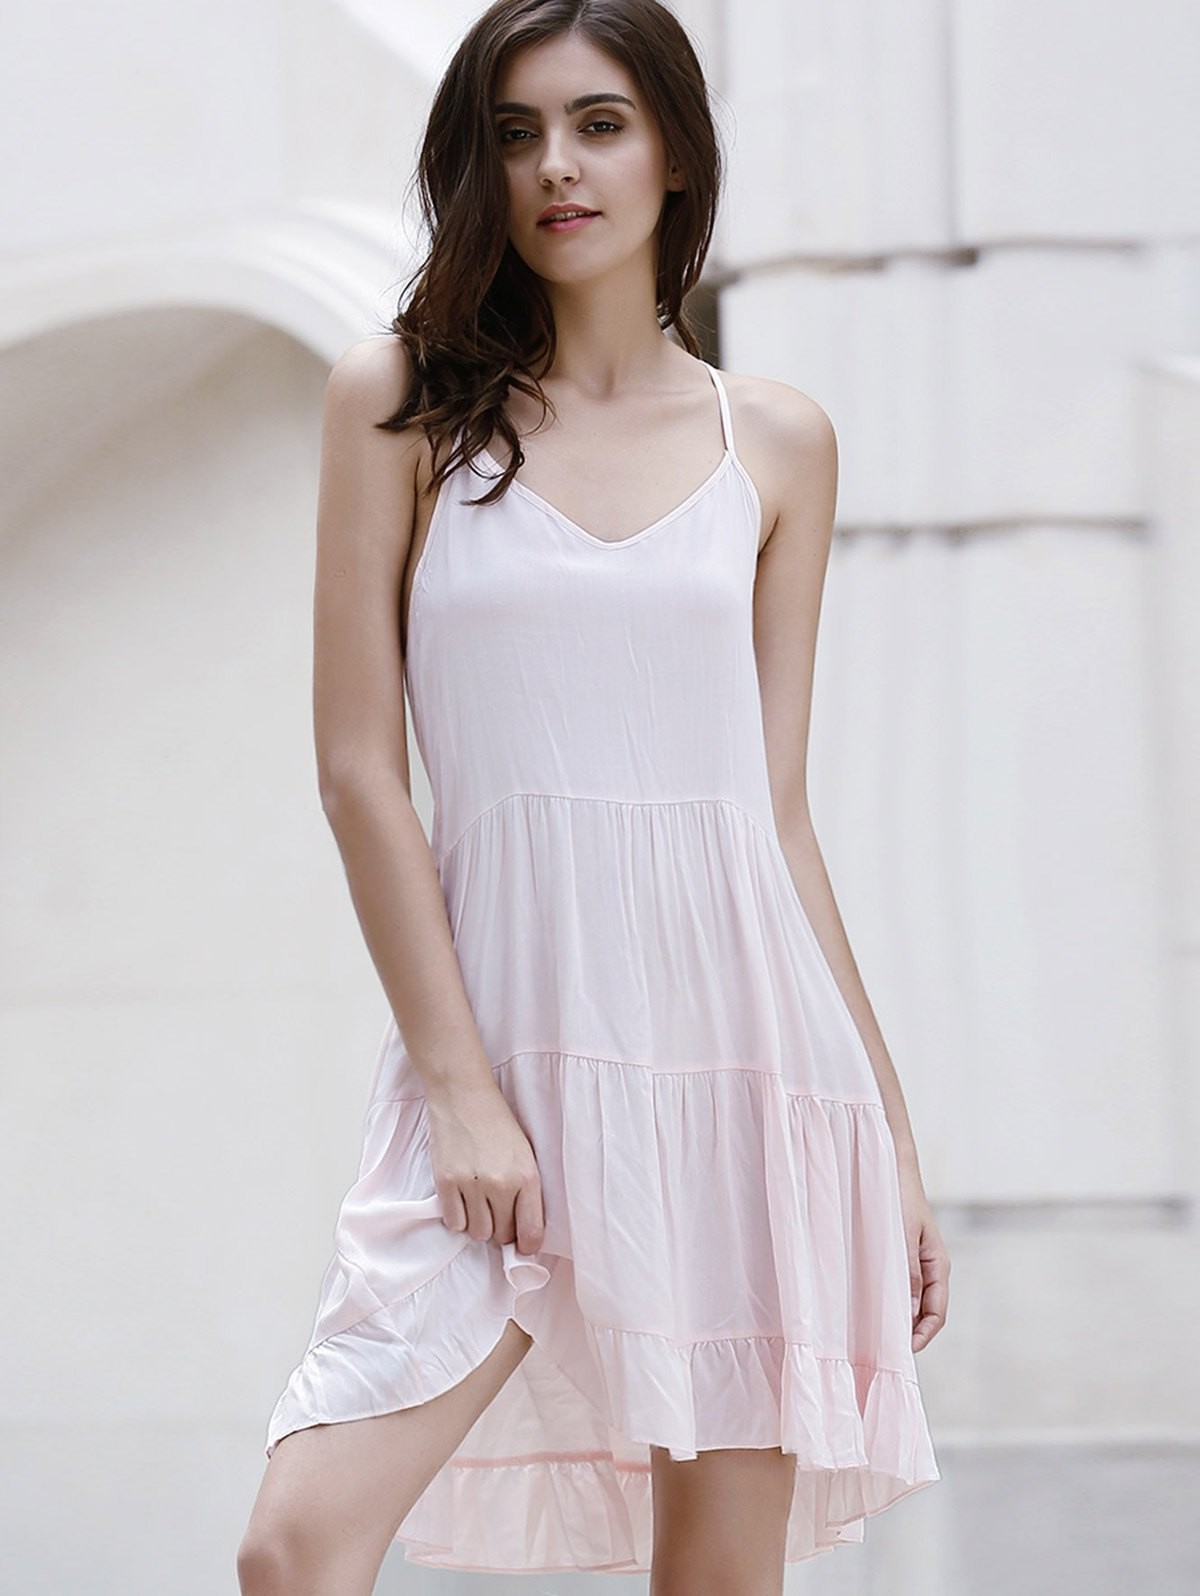 Flounce Ruffles Solid Color Spaghetti Straps Dress - PINK S